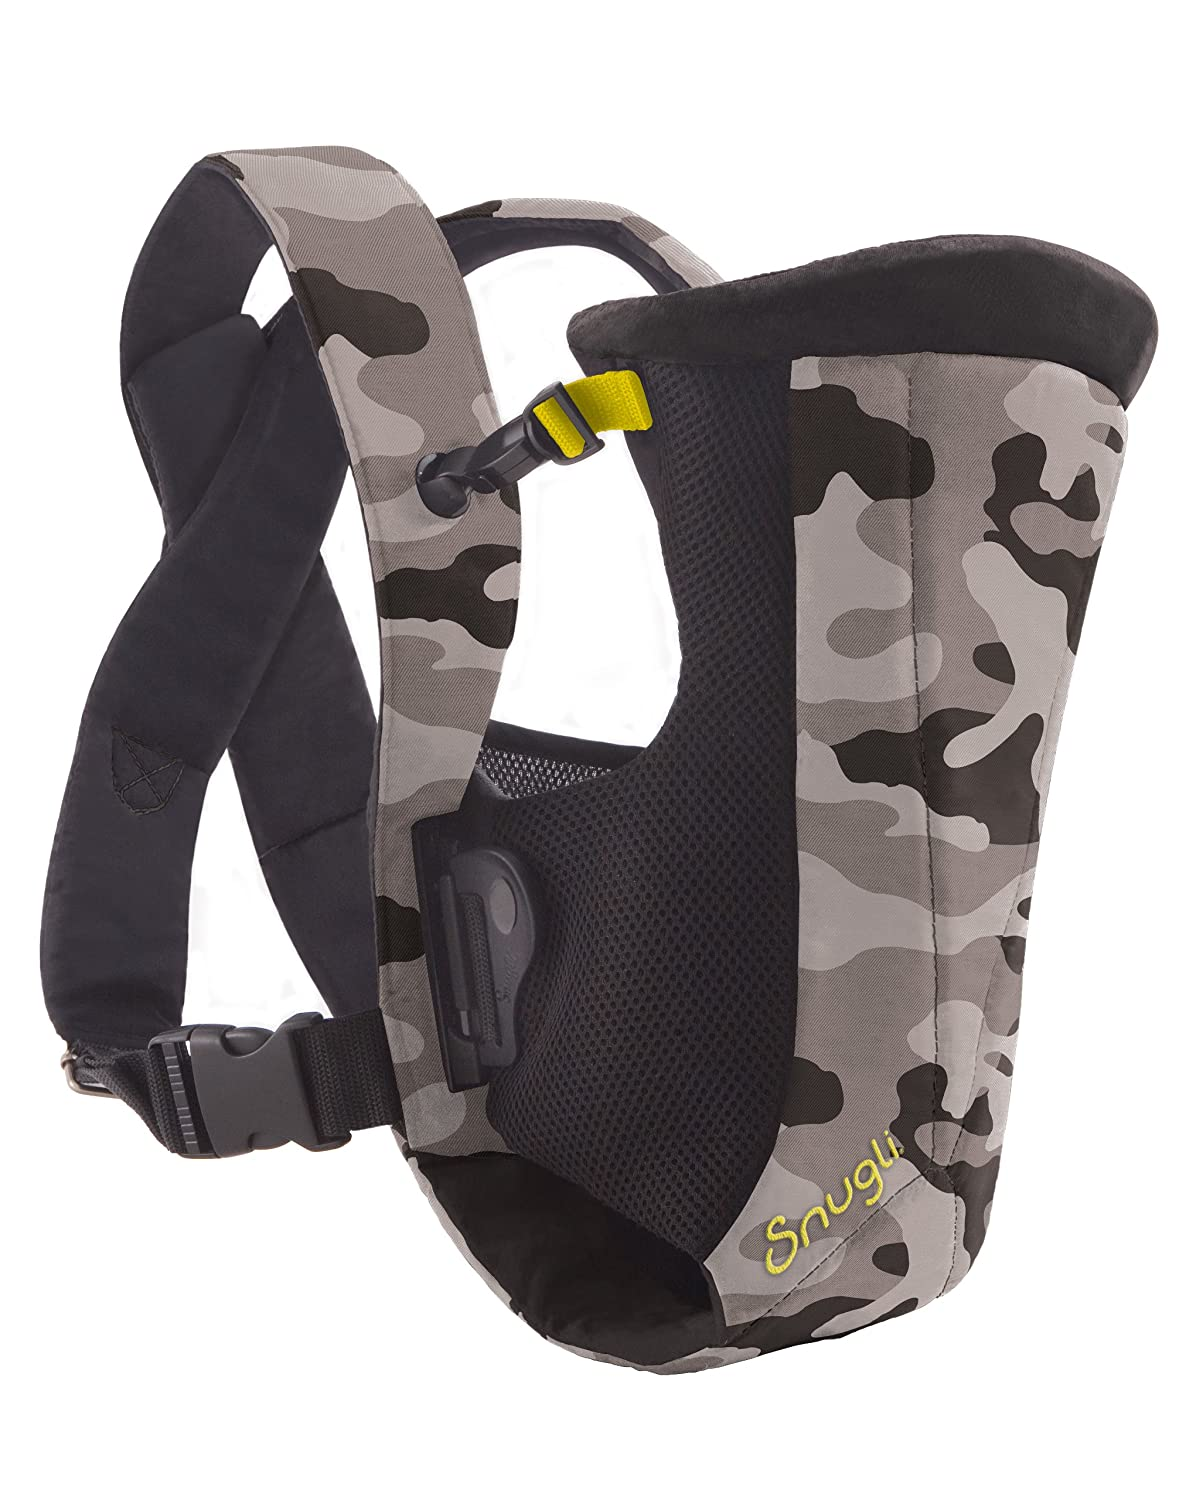 9d3a2590677 Evenflo Snugli Cross Country Baby Carrier Hiking Backpack- Fenix ...